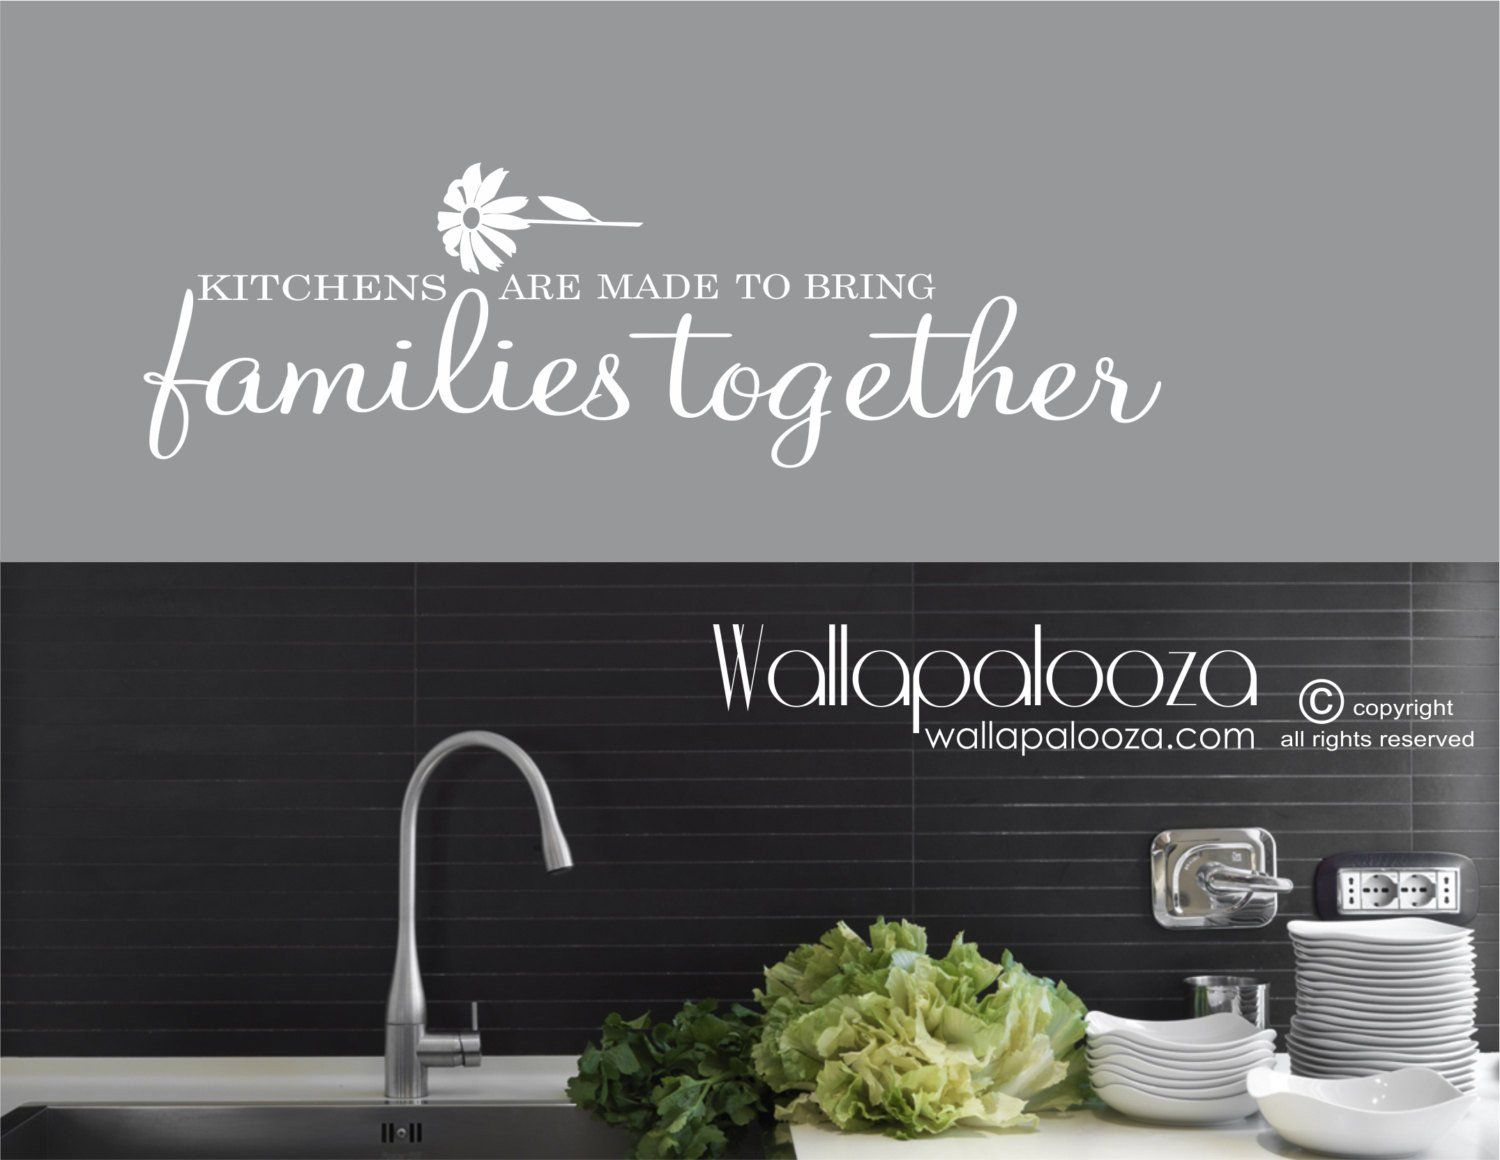 Kitchen wall art kitchens bring families together wall decal